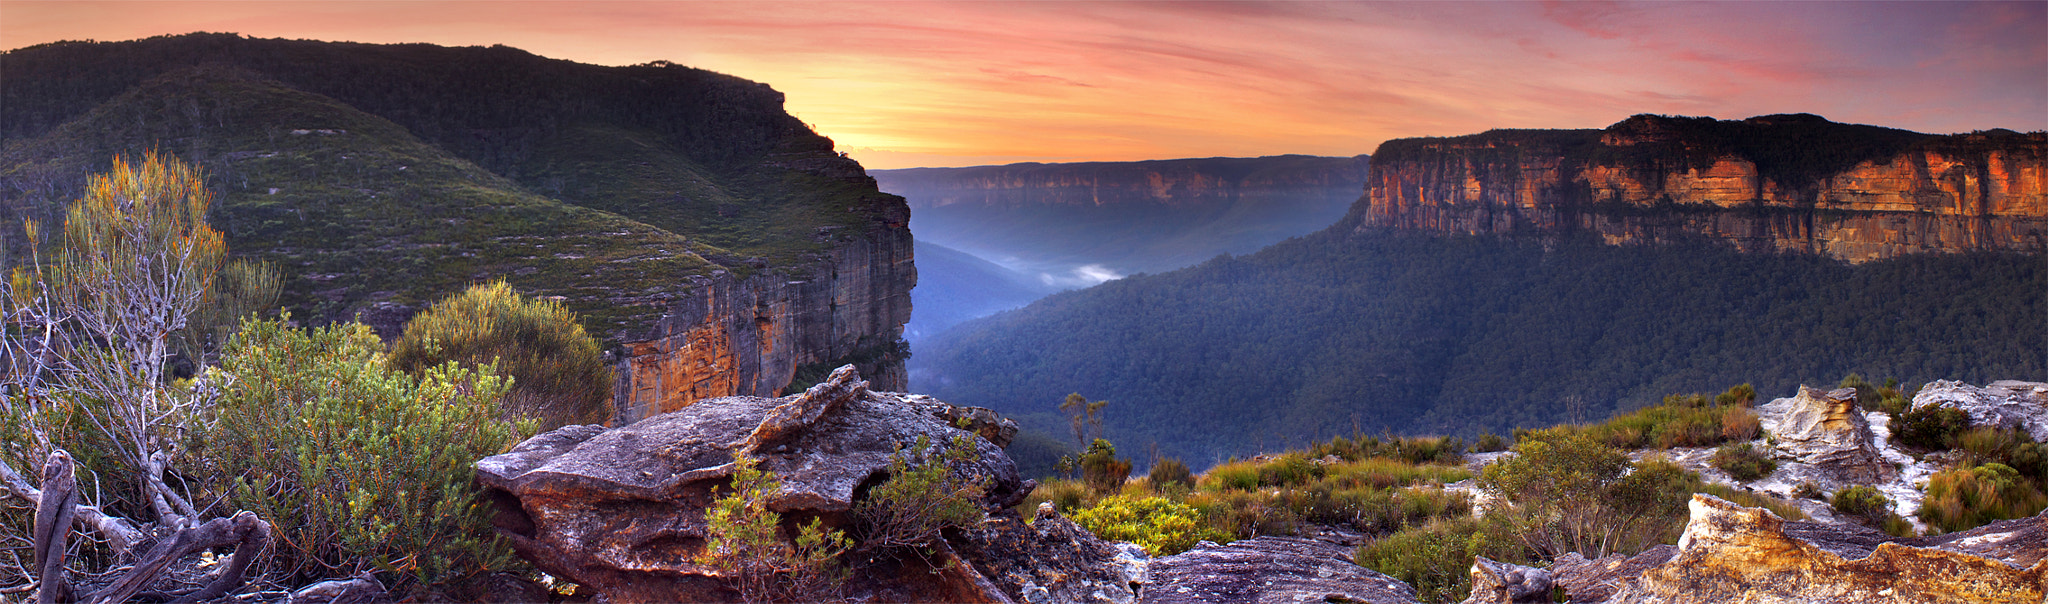 Photograph From The Top Of The World || GROSE VALLEY || BLUE MOUNTAINS by Rhys Pope on 500px